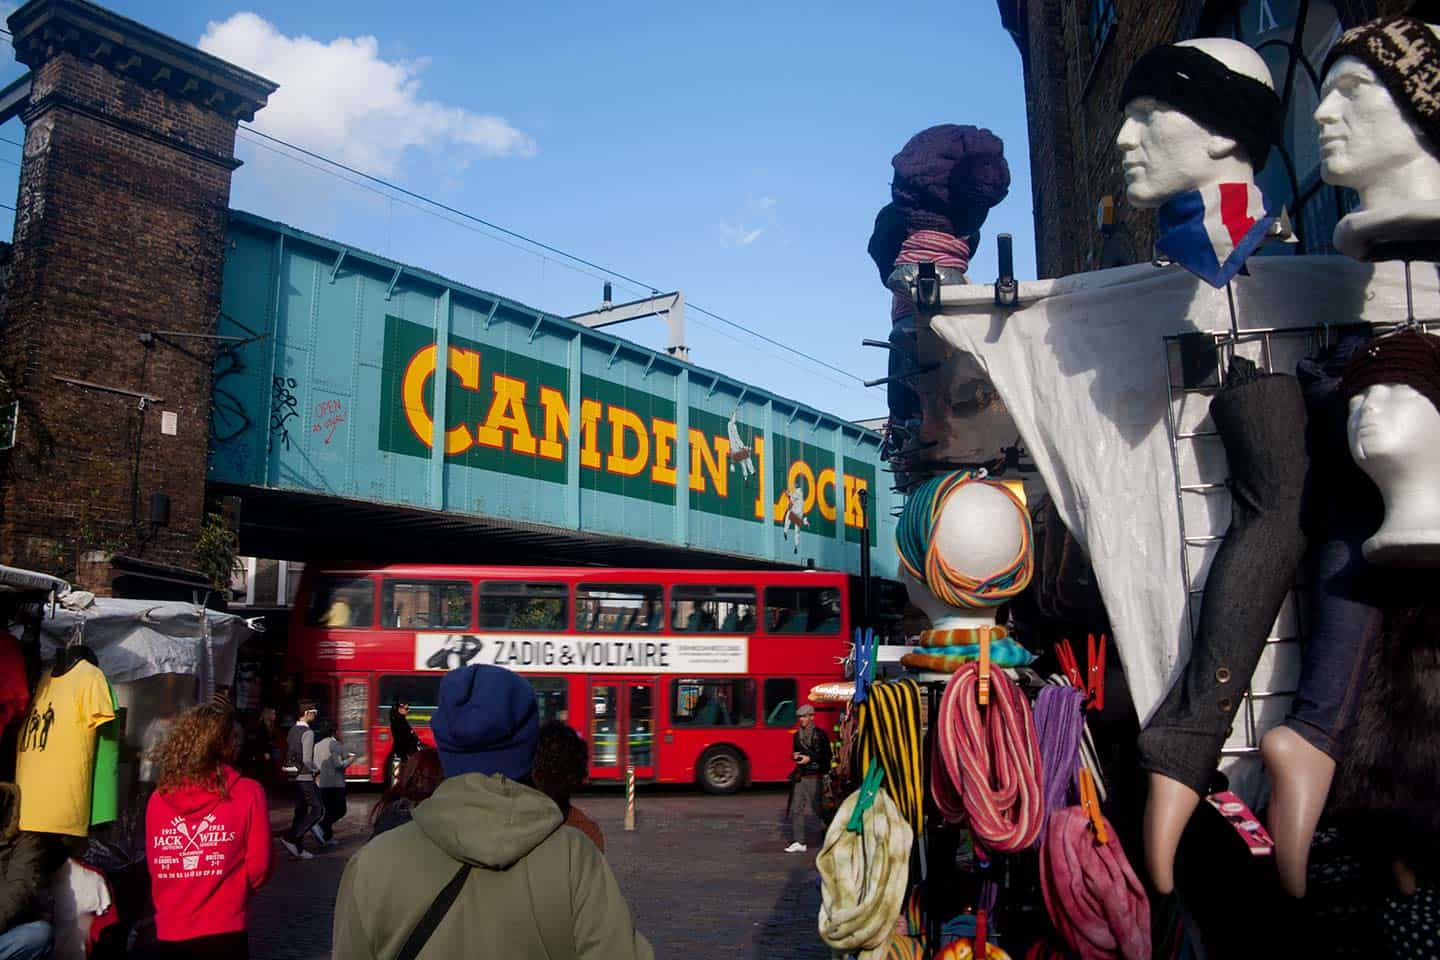 What to visit in London Image of Camden Lock bridge and market stalls